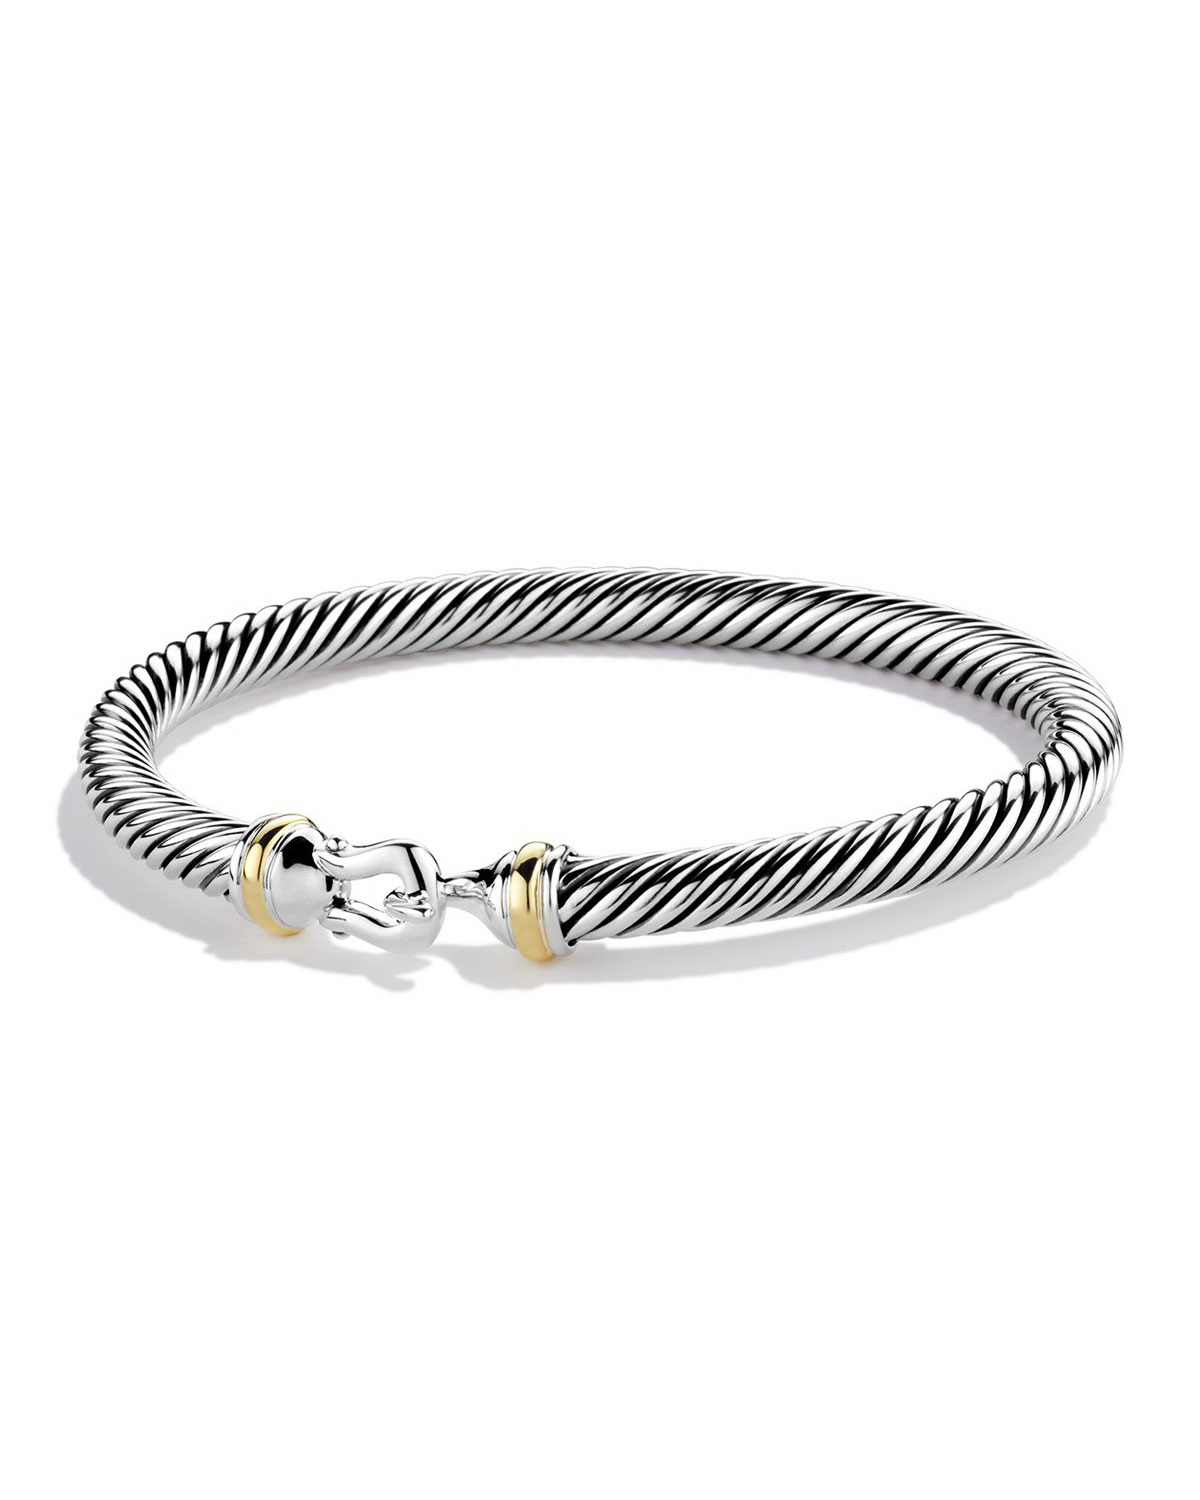 Cable Clic Buckle Bracelet With 18k Gold 5mm